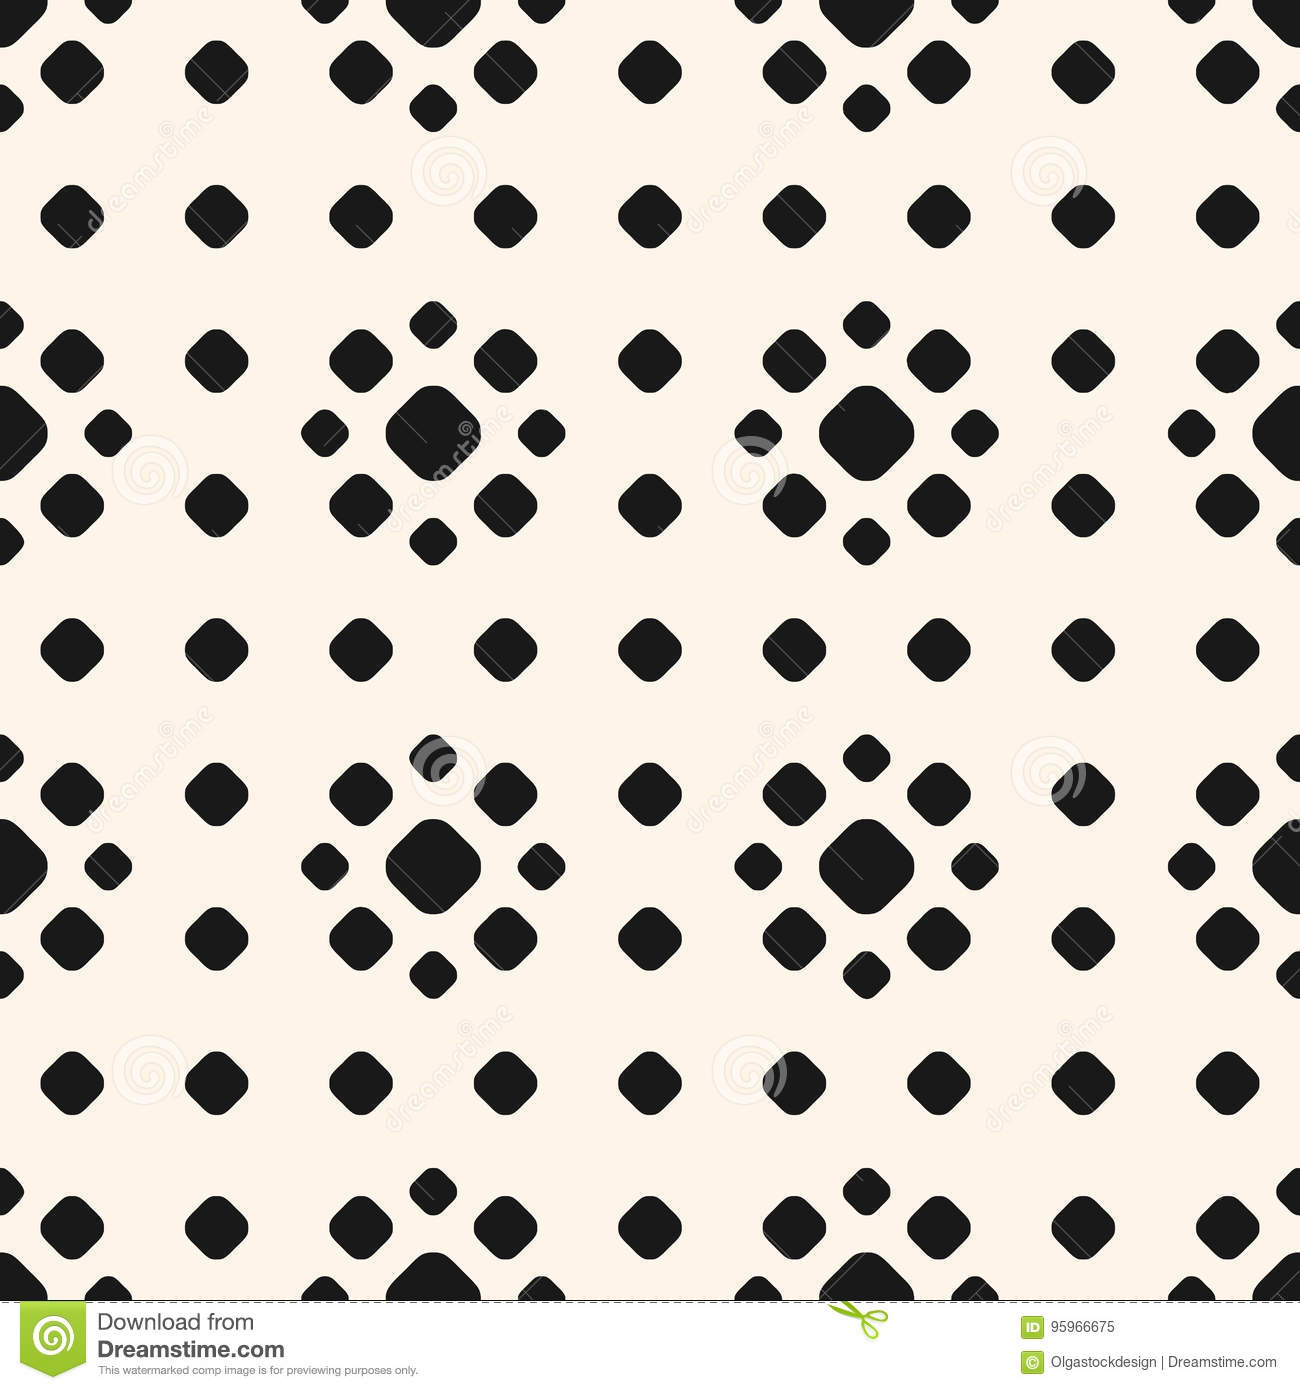 polka dot pattern with circles floral shapes stock vector rh dreamstime com vector halftone dot pattern vector dot pattern illustrator